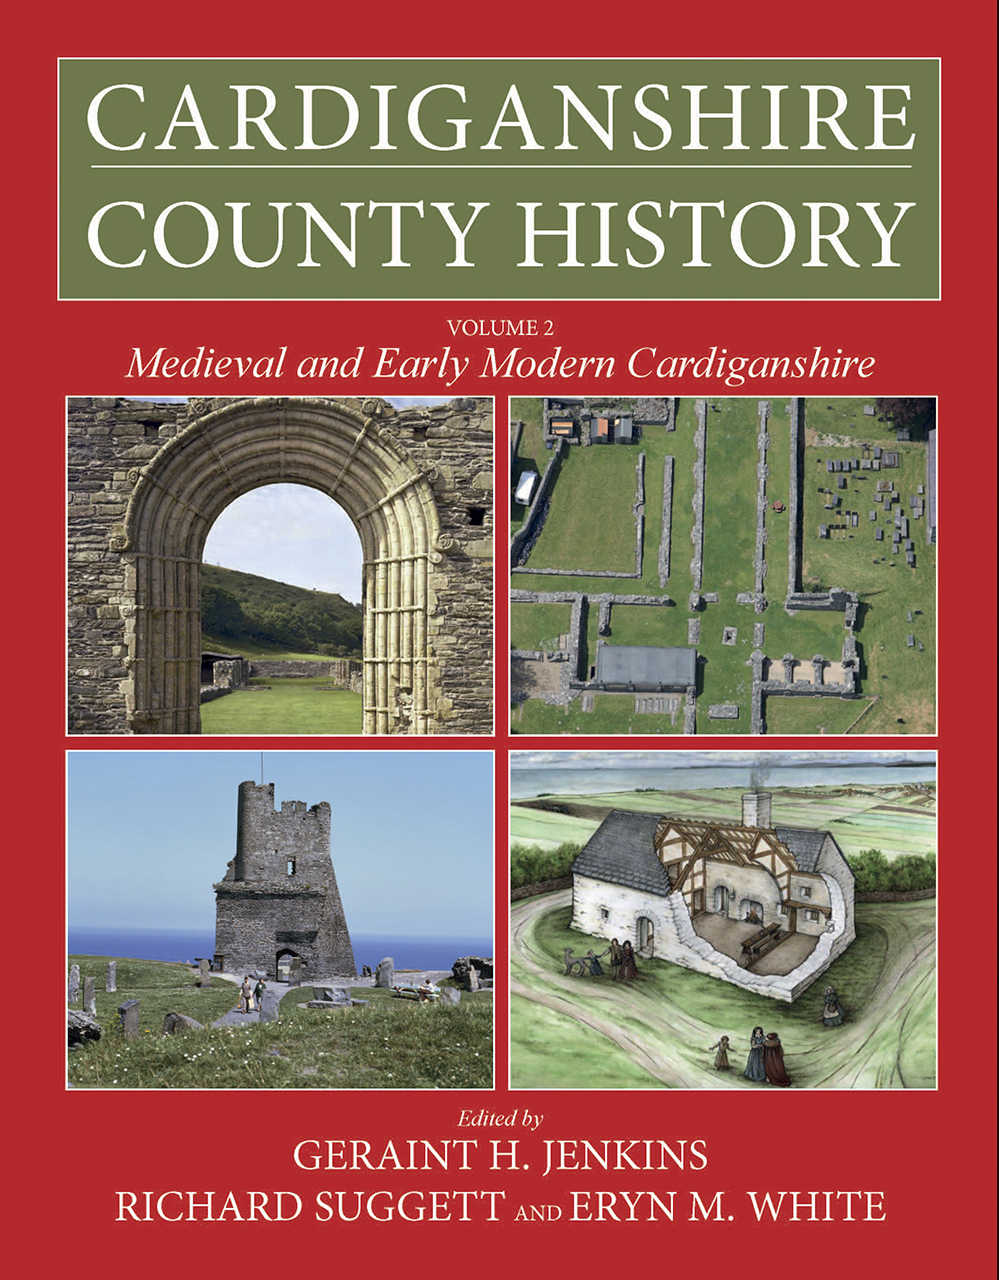 Cardiganshire County History